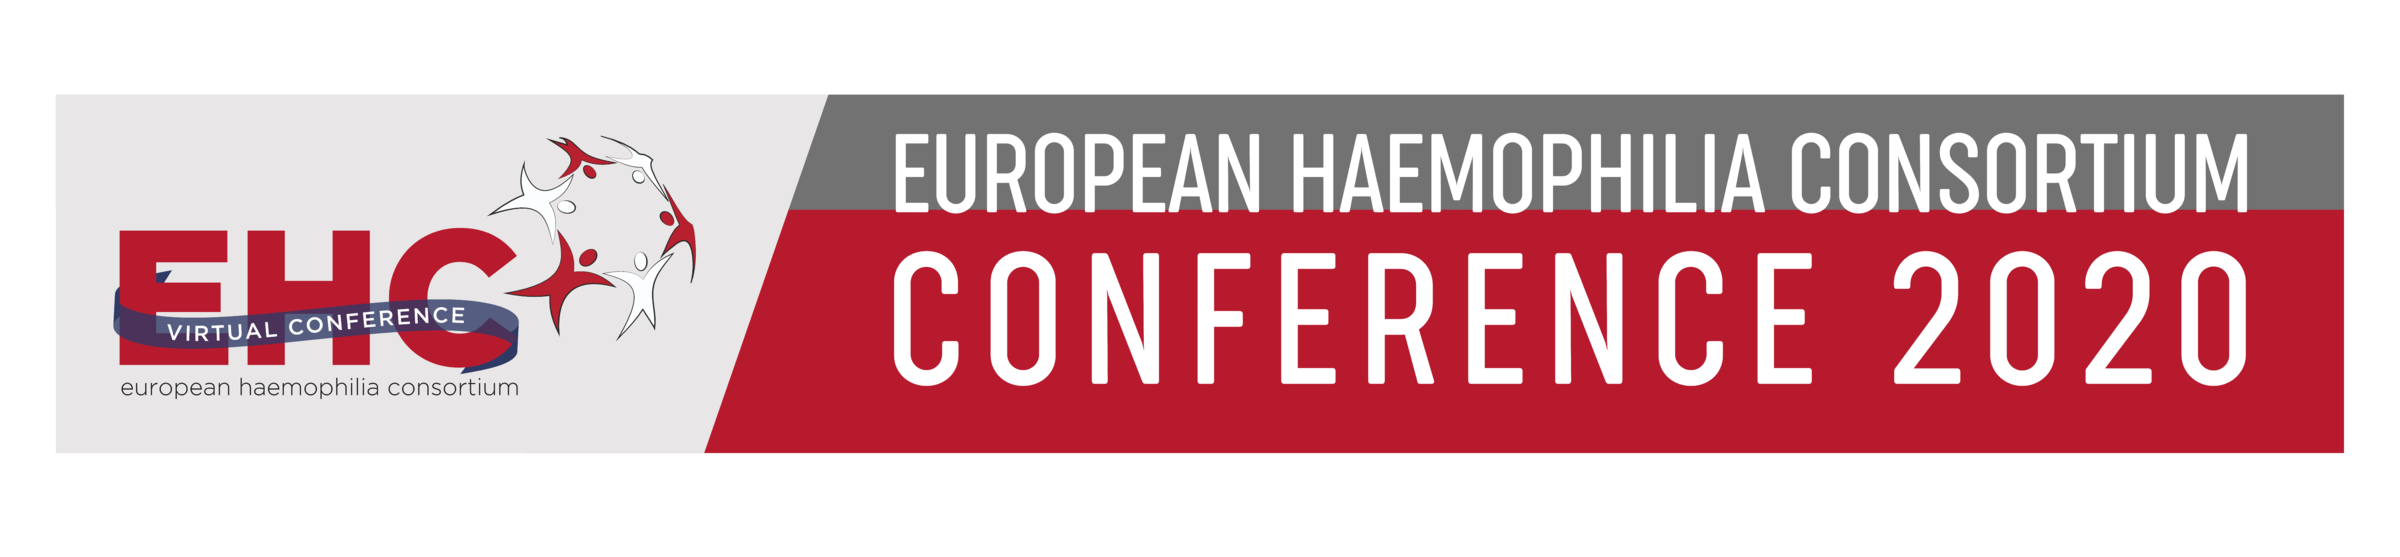 EHC Virtual Conference 2020